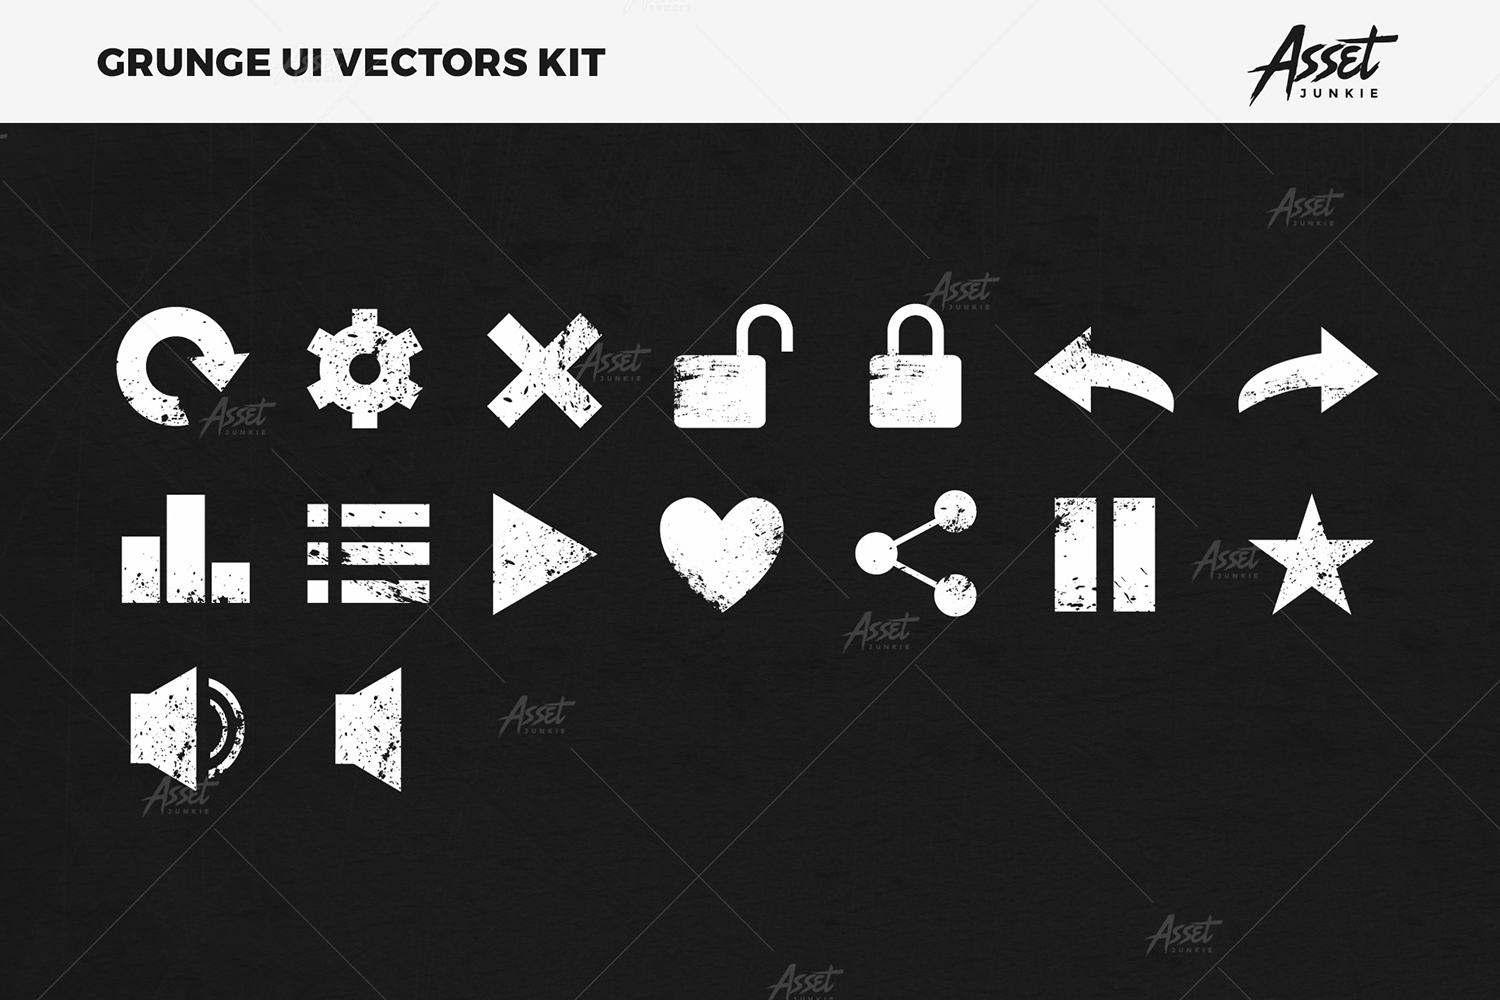 Grunge UI Vectors Kit example image 9